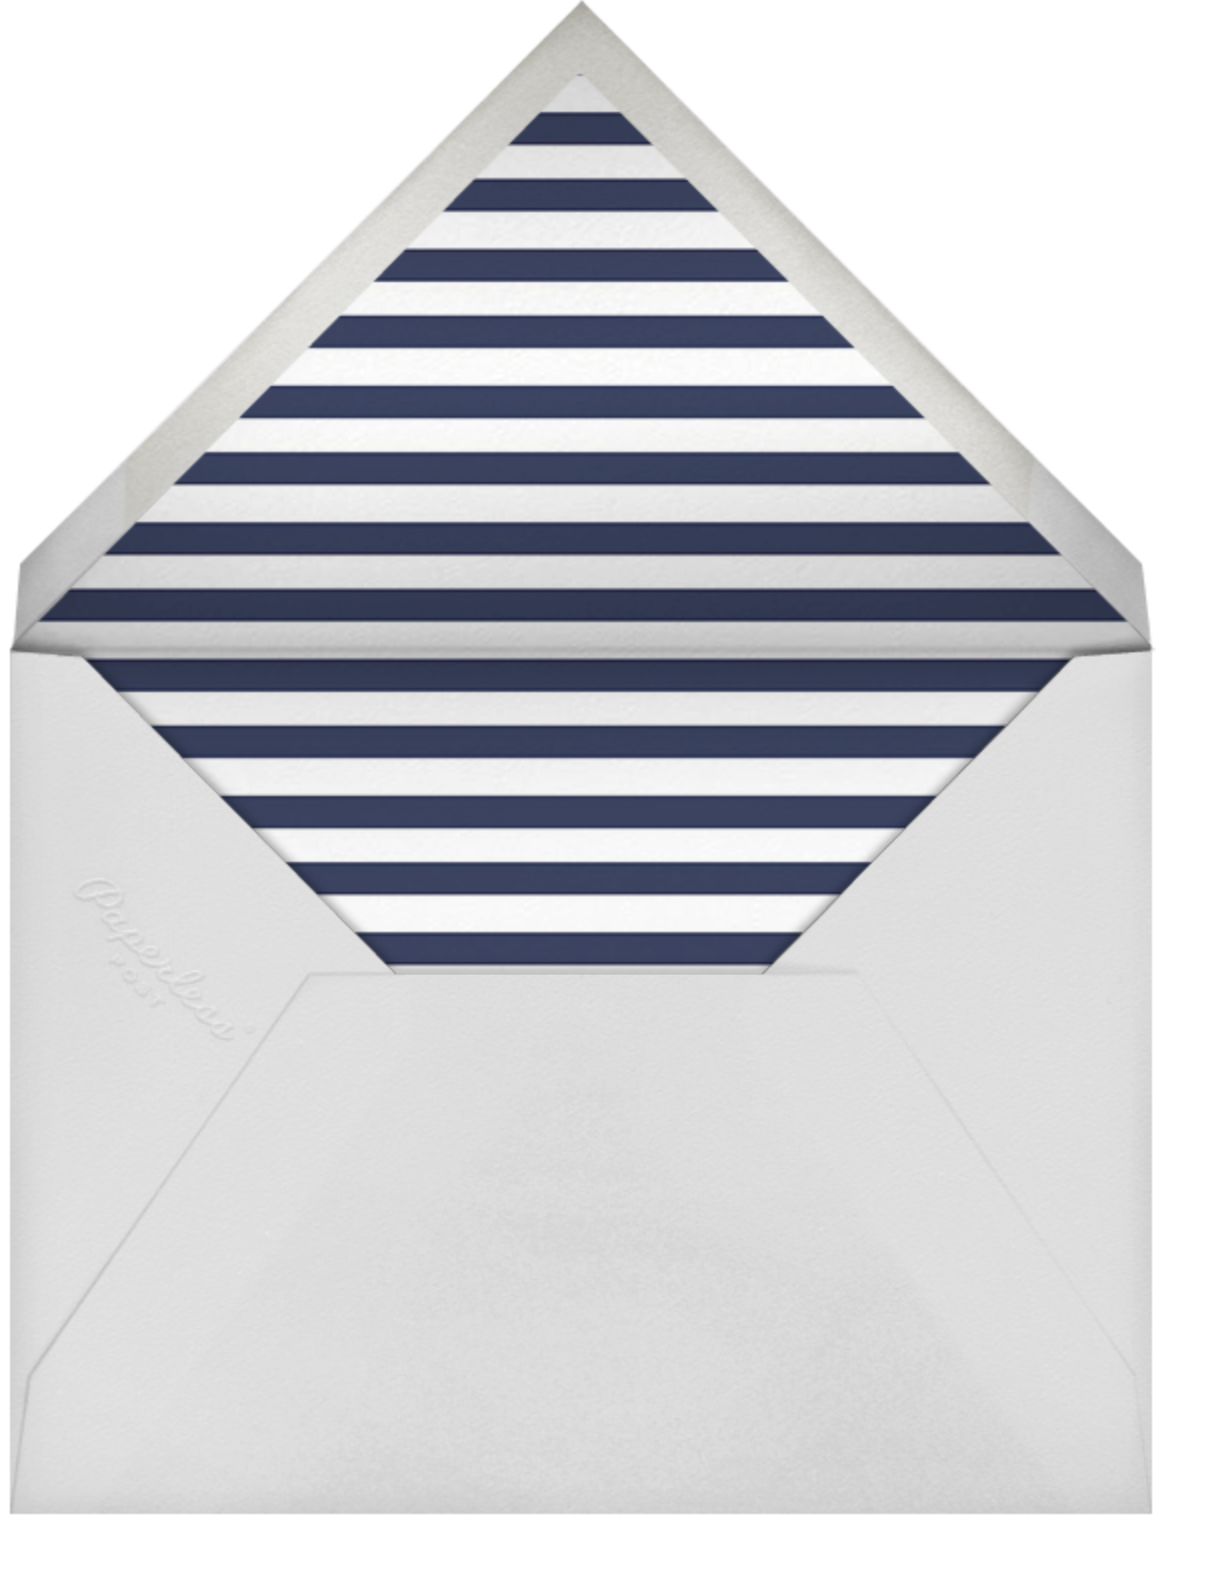 Confetti - Navy/Silver - kate spade new york - Charity and fundraiser  - envelope back